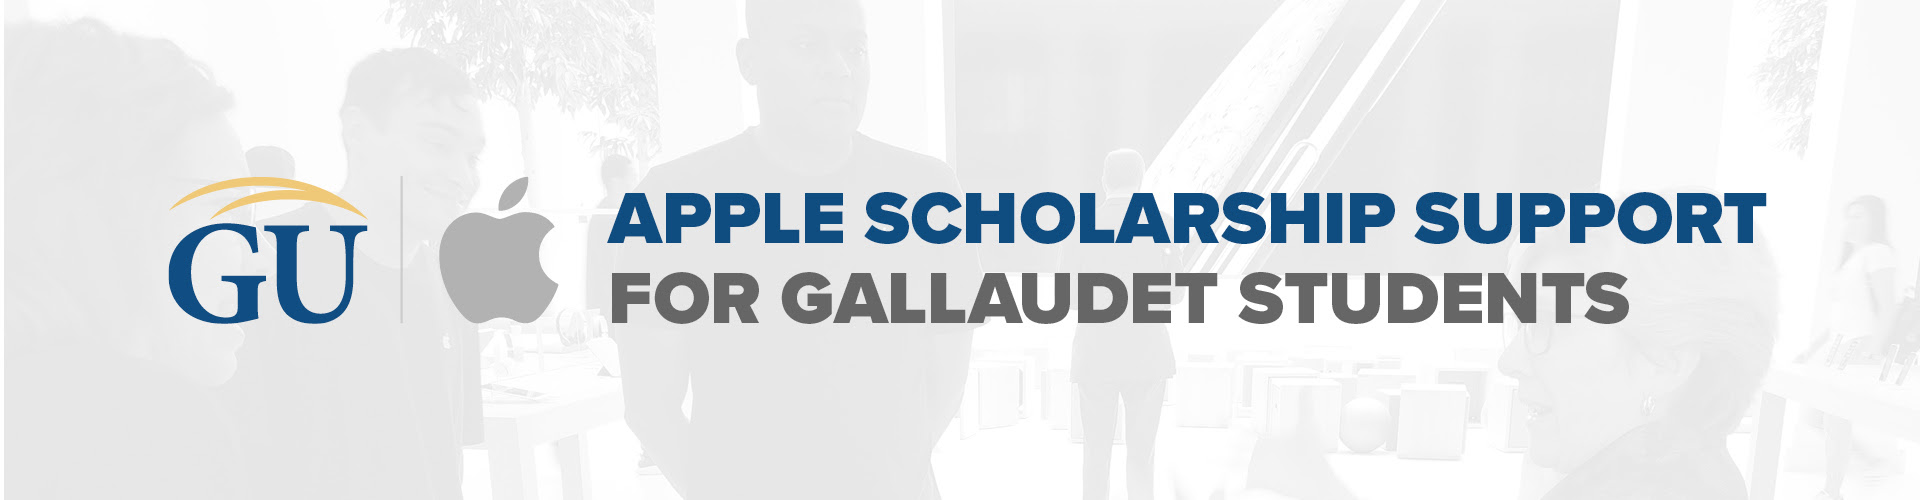 "An image with Gallaudet's and Apple's logo is visible with the phrase ""Apple Scholarship Support for Gallaudet Students"""